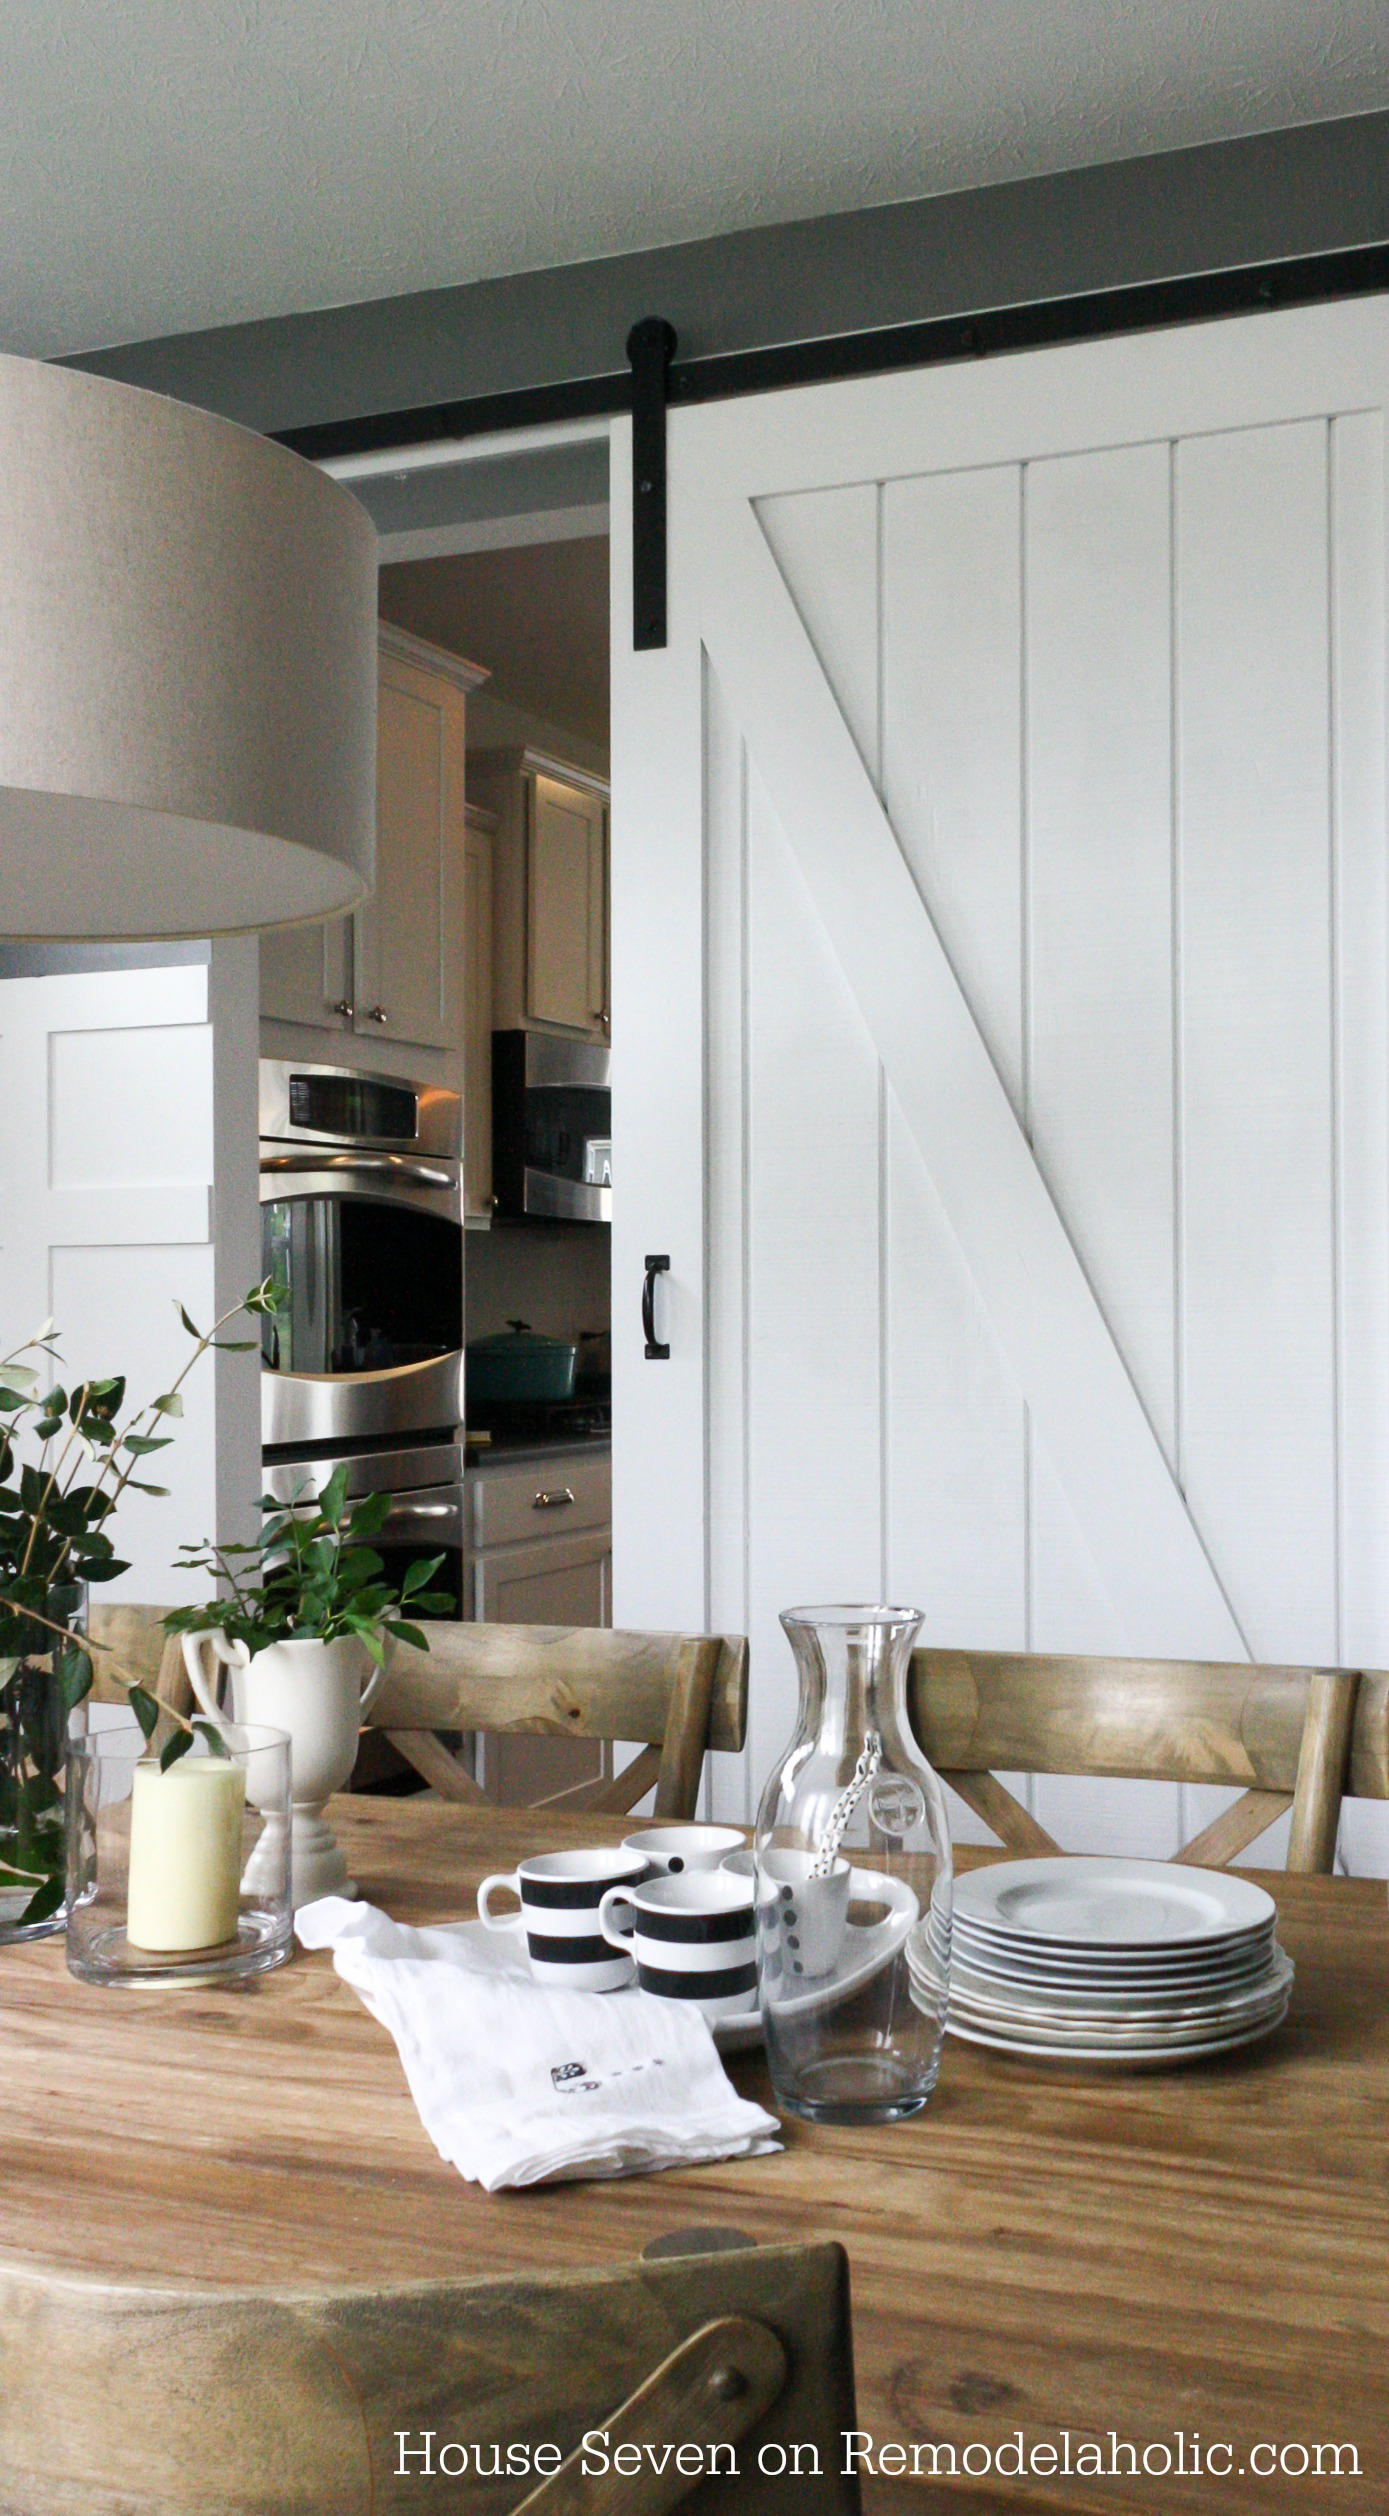 Remodelaholic | Simple DIY Barn Door Tutorial